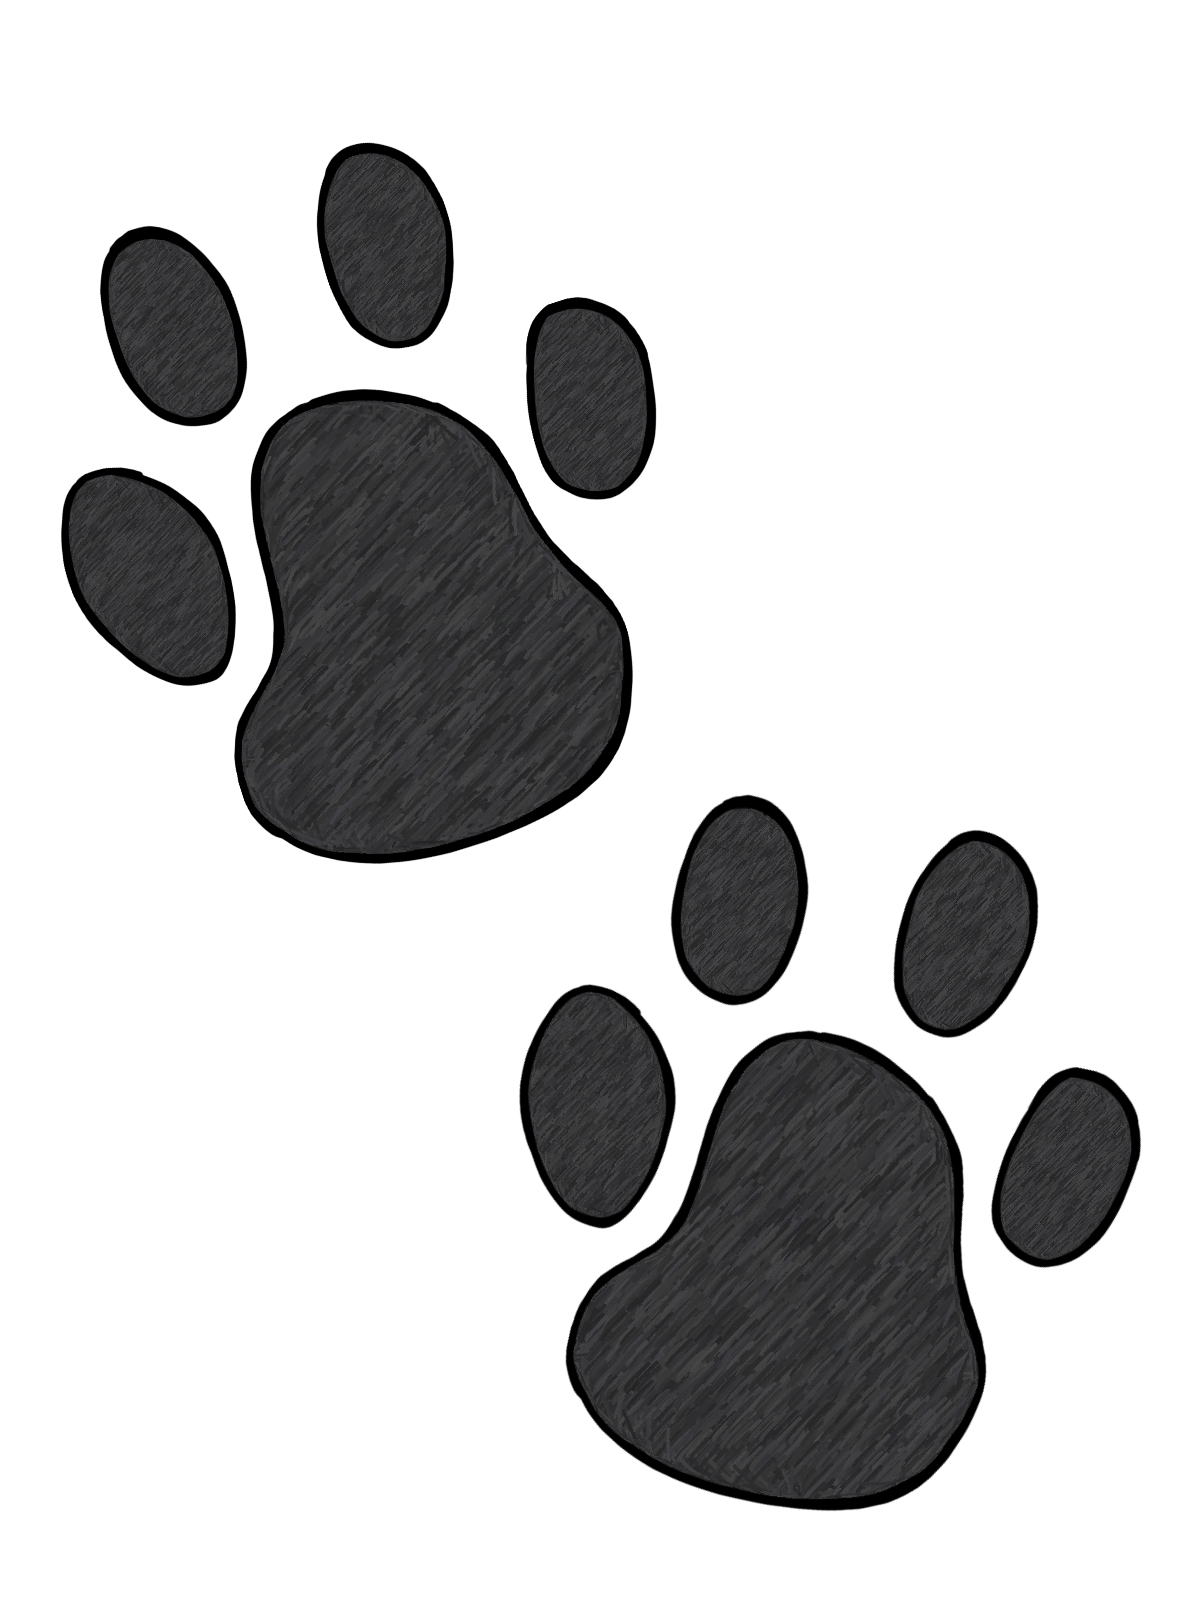 1200x1600 Paw Print Tattoos On Dog Paw Prints Scroll Clipart 3 4